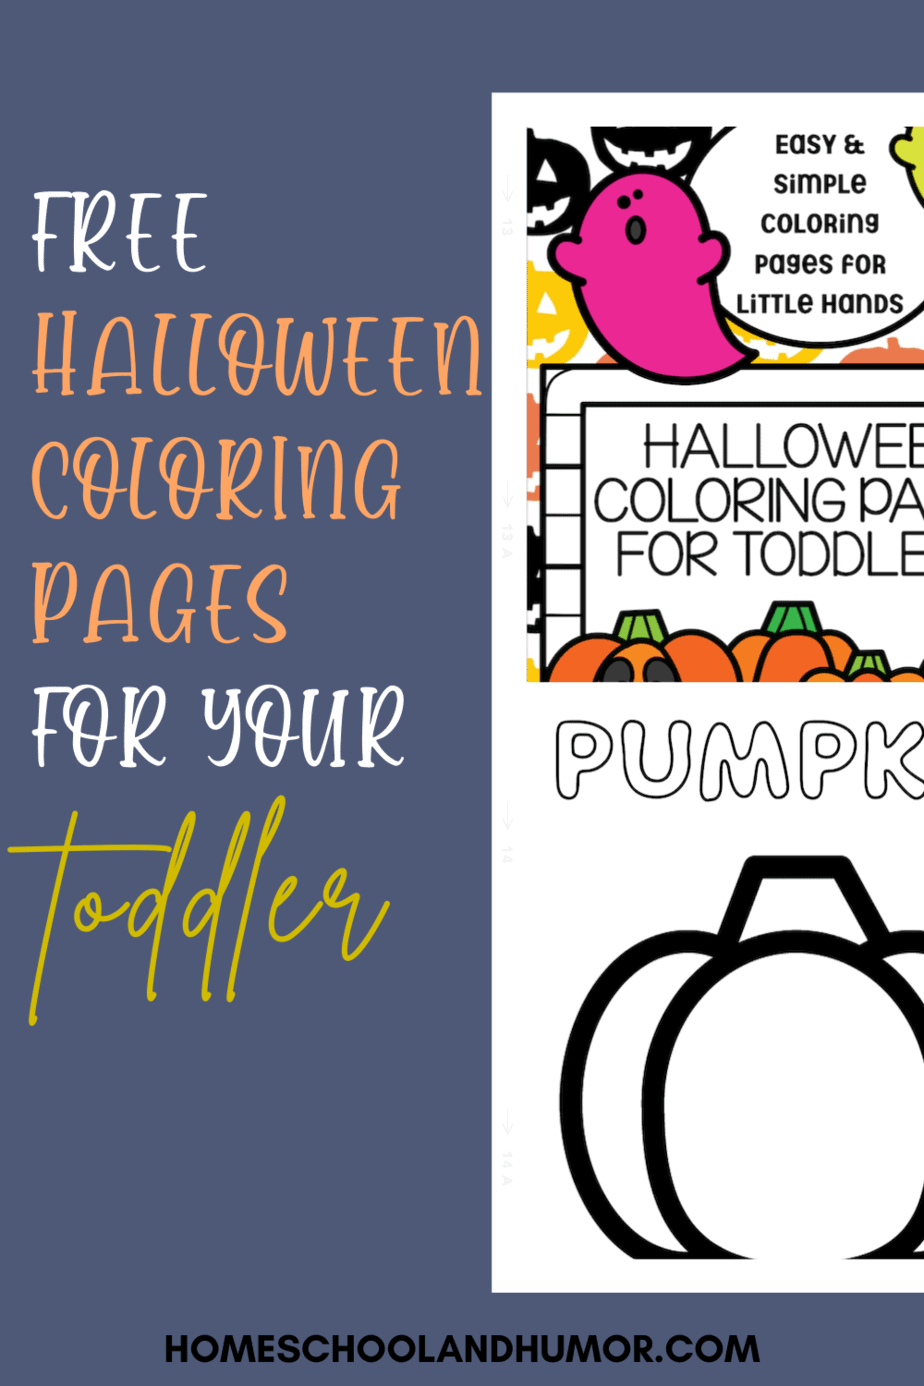 Fun and Easy Halloween Coloring Pages for Toddlers